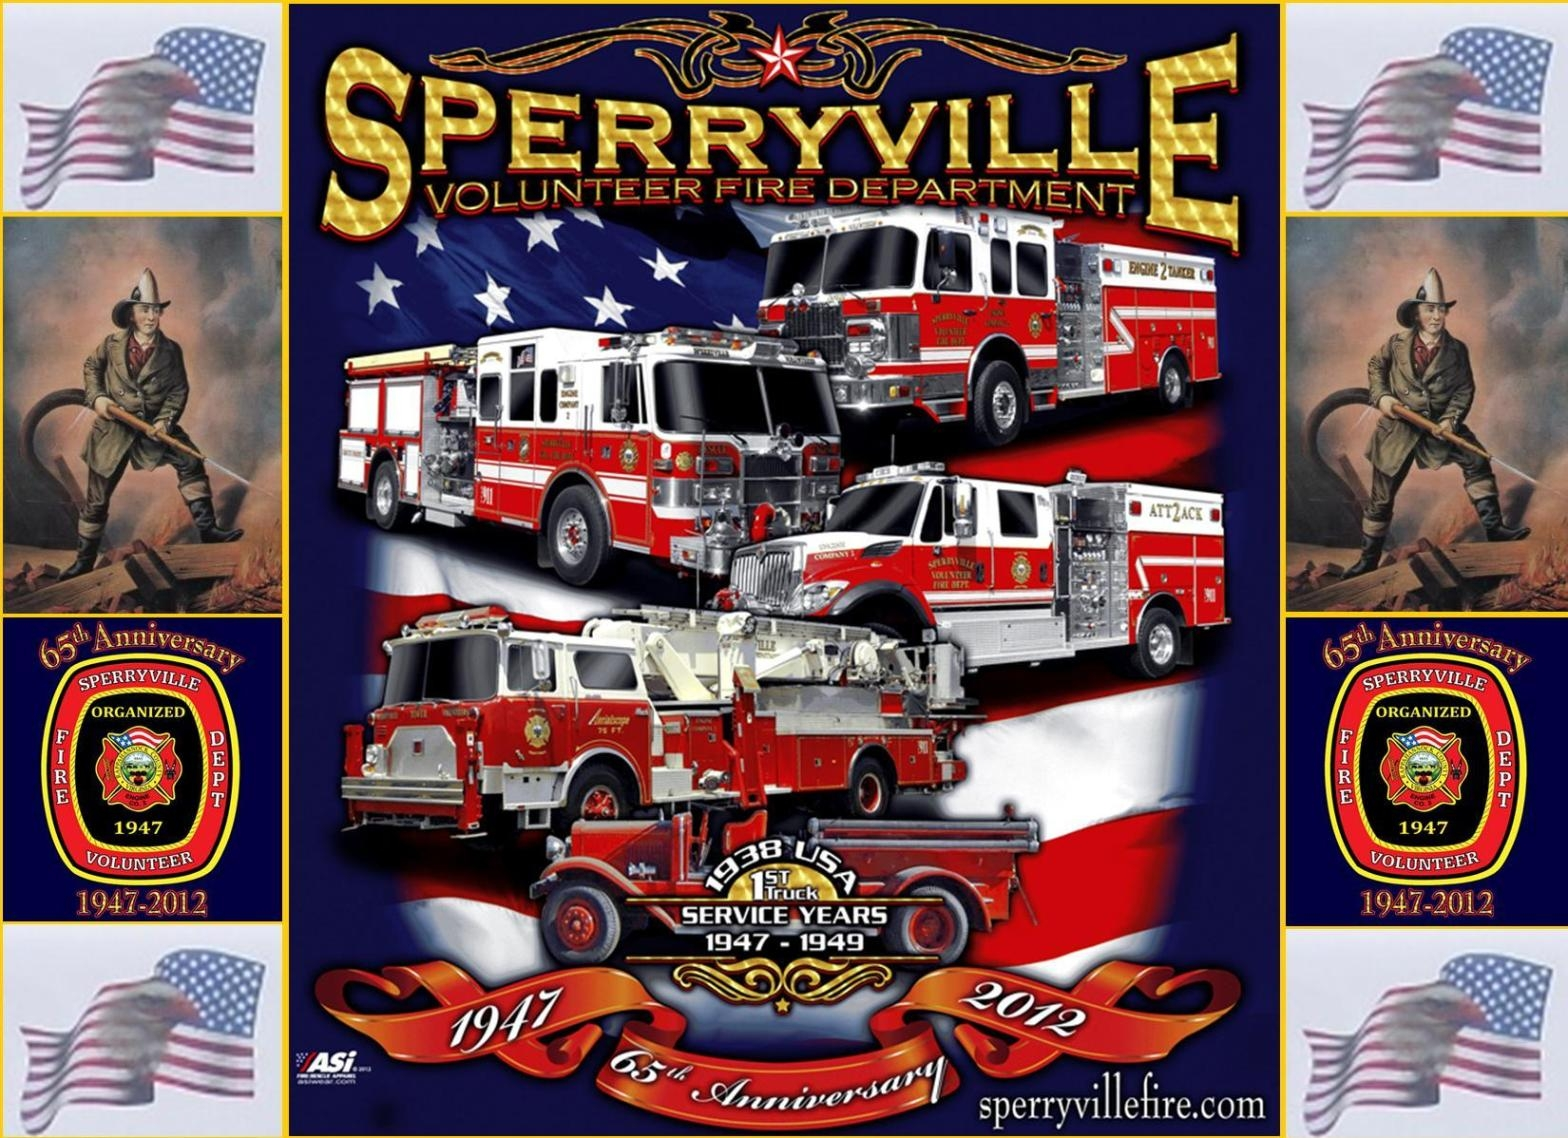 Sperryville Volunteer Fire Department Inc.